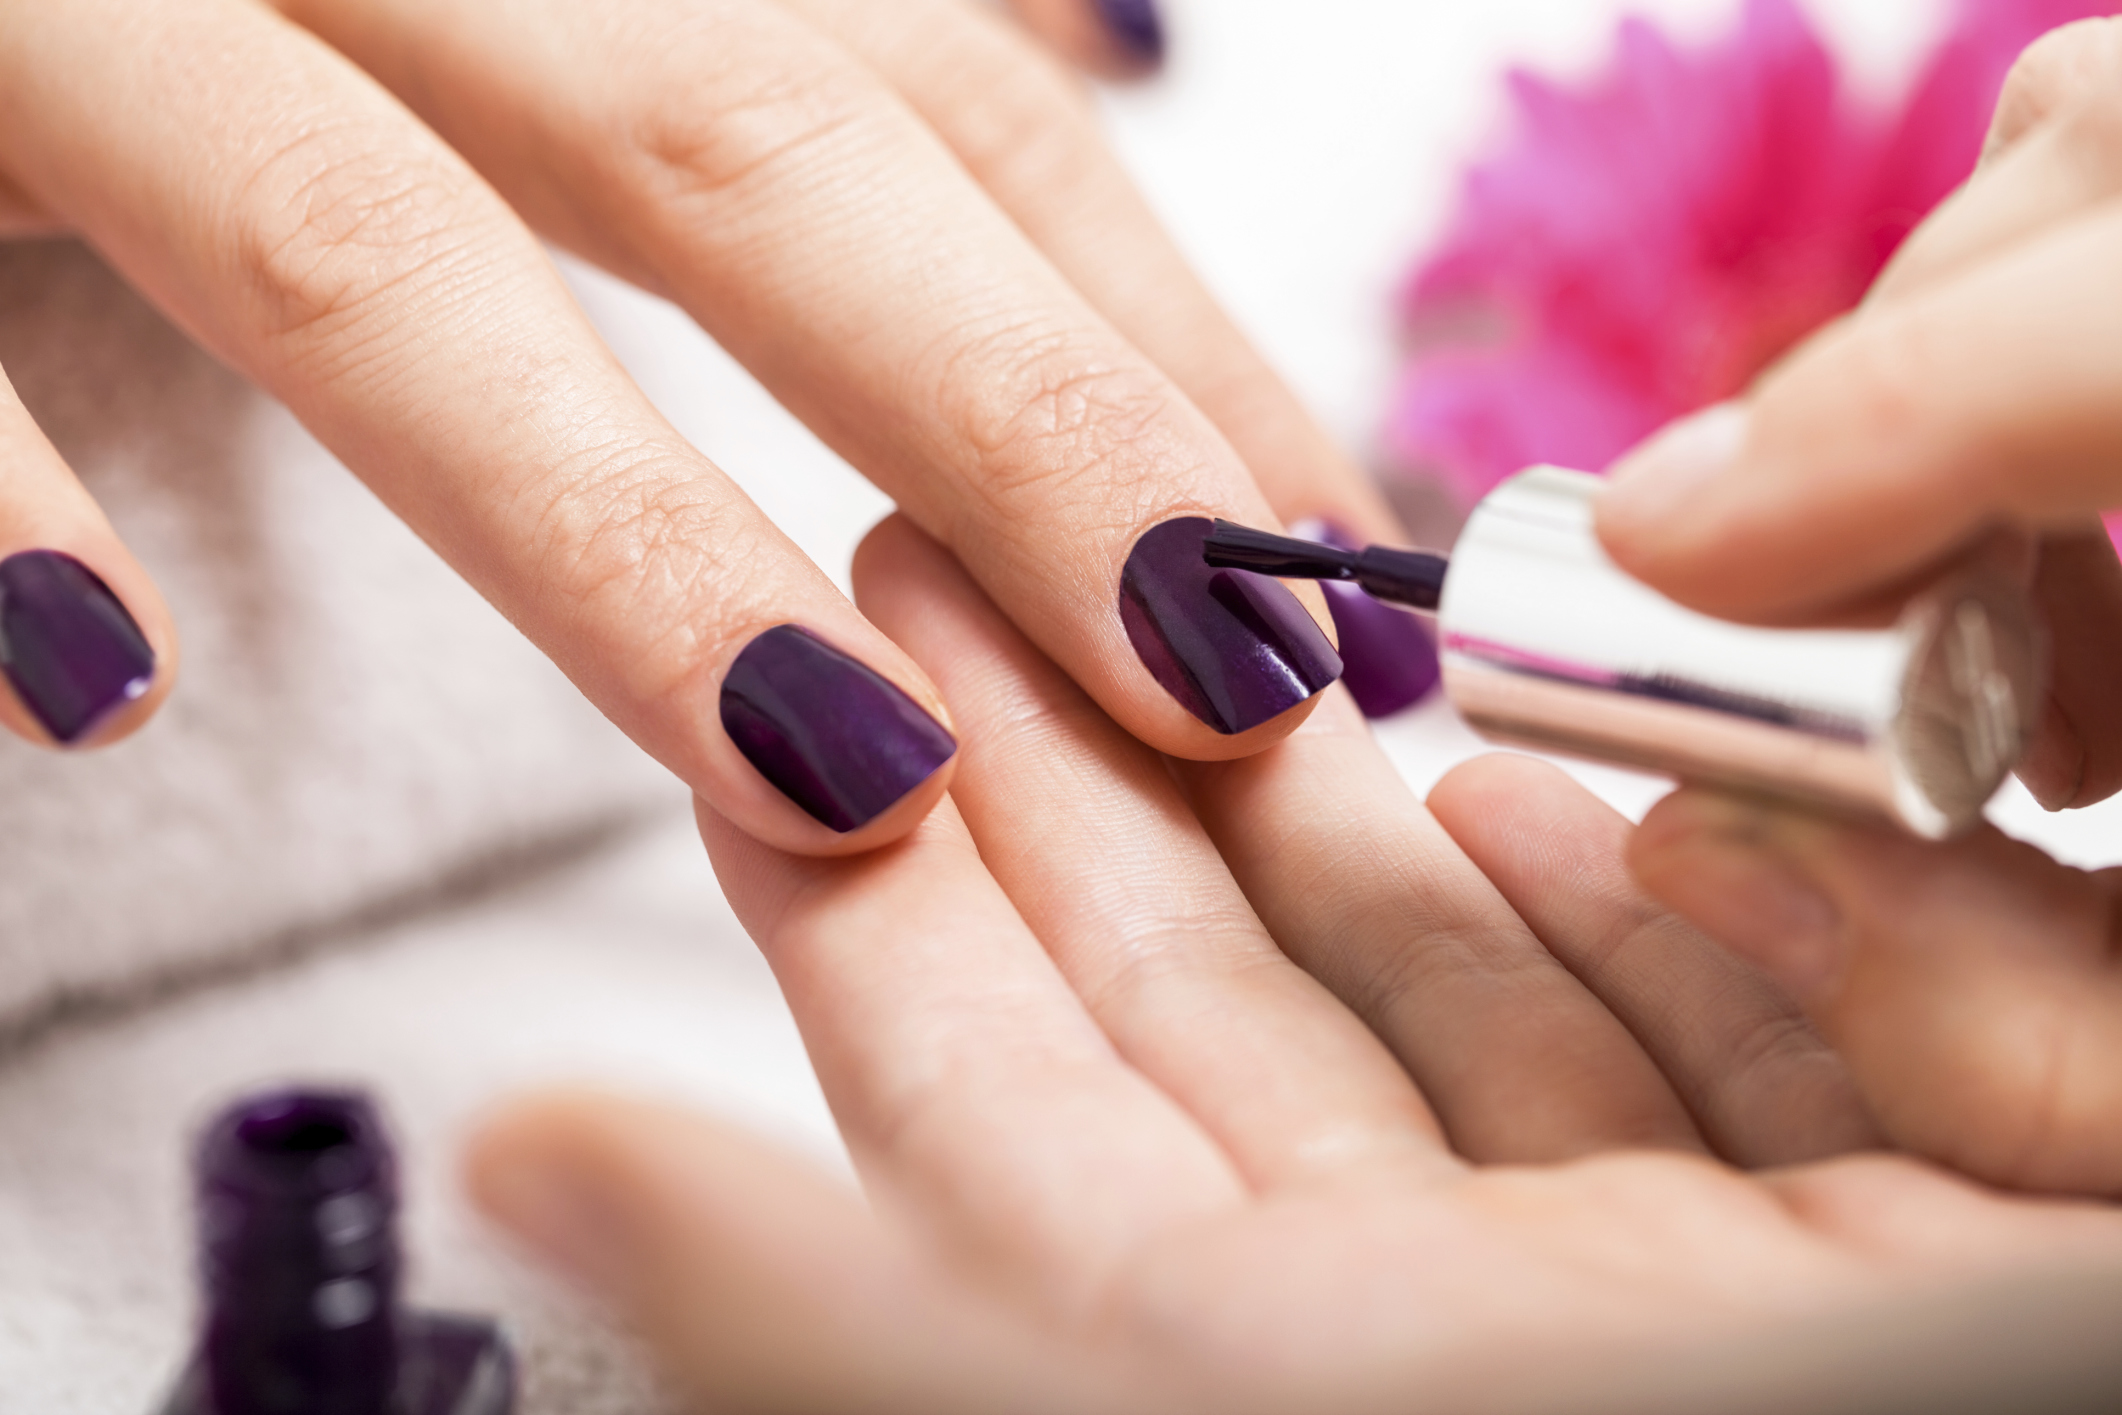 The Effects of Nail Polish Ingredients | LIVESTRONG.COM